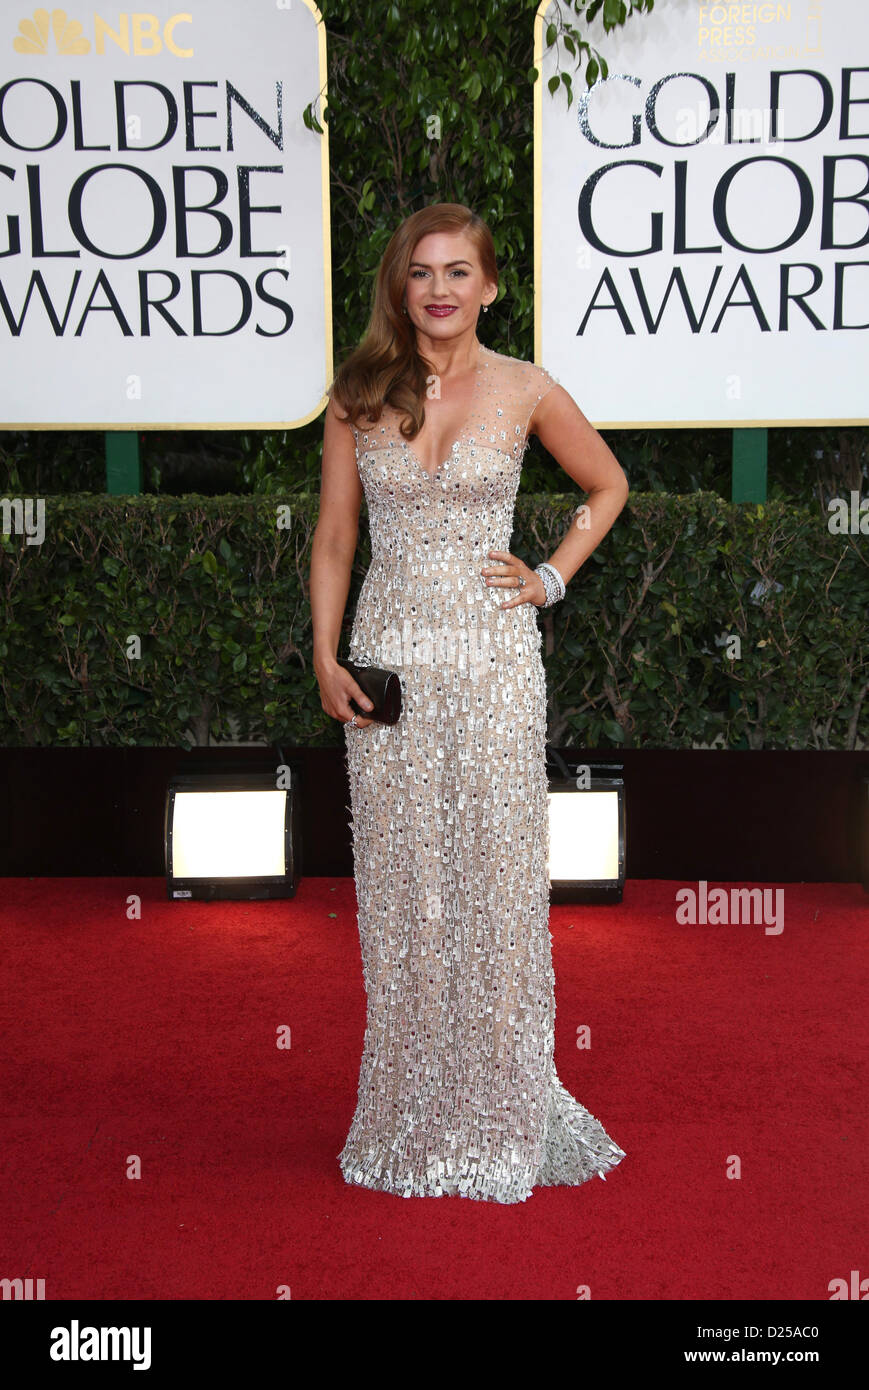 Actress Isla Fisher arrives at the 70th Annual Golden Globe Awards presented by the Hollywood Foreign Press Association, - Stock Image